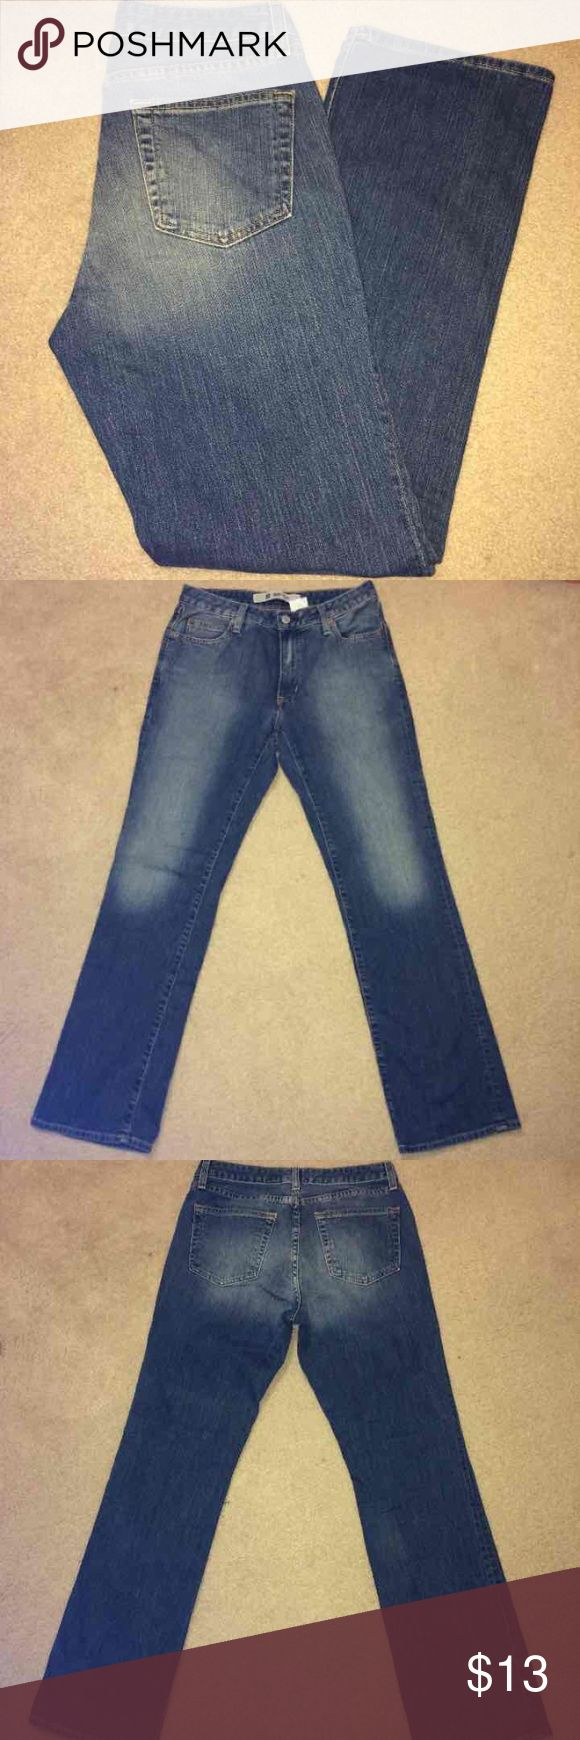 Gap Boot Cut Stretch Blue Jeans Gently worn. Women's size 8 Regular Gap Boot Cut Stretch Blue Jeans. No rips, stains or tears. Non smoking home.   Look forward to working with you! GAP Jeans Boot Cut